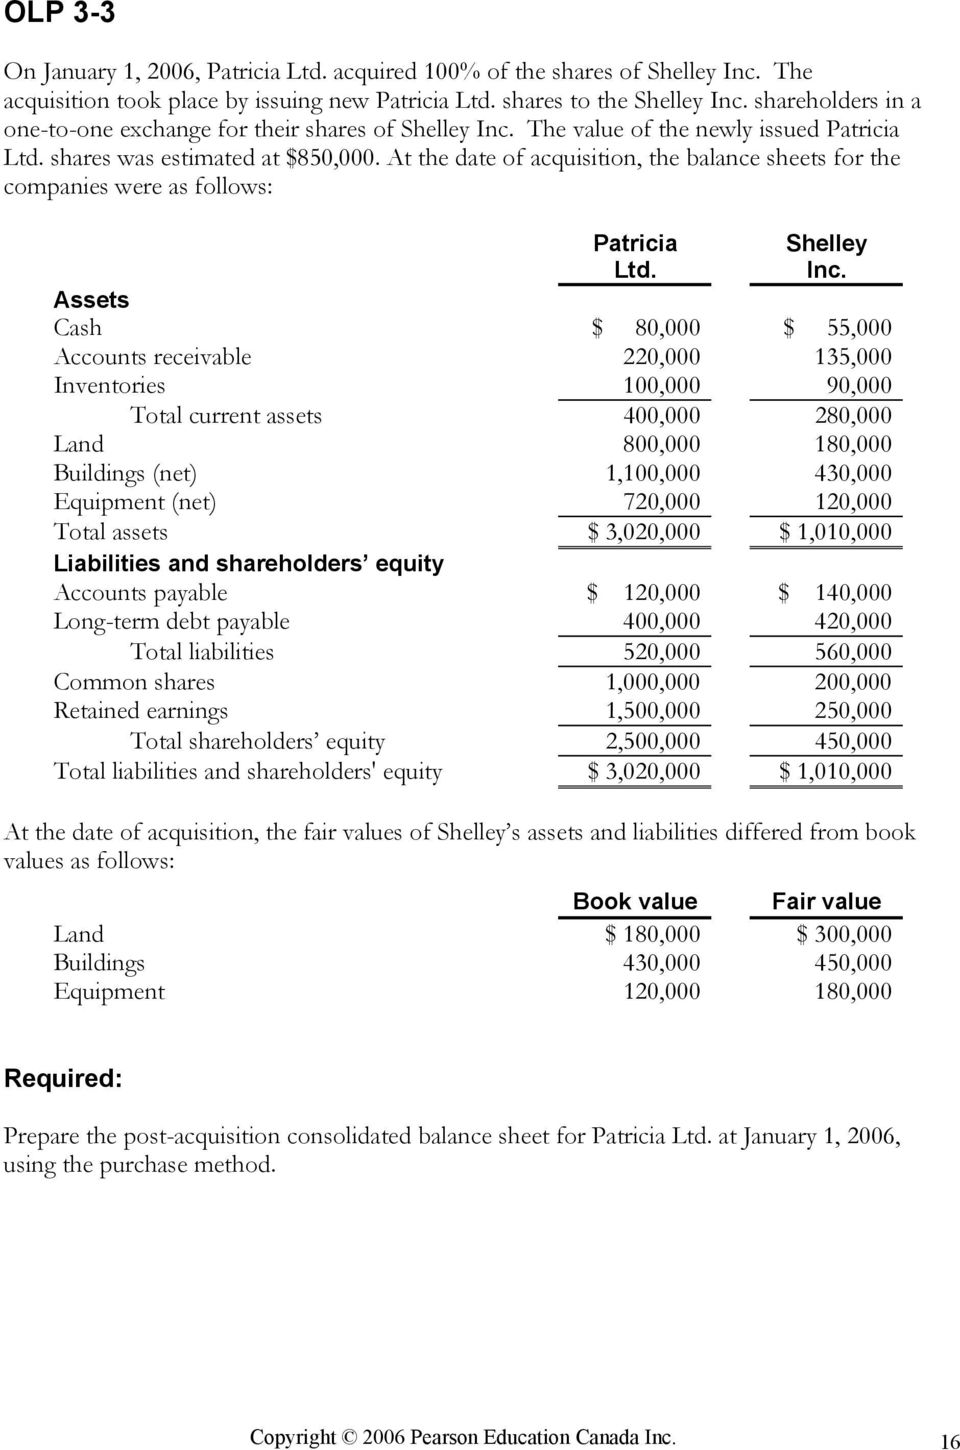 At the date of acquisition, the balance sheets for the companies were as follows: Patricia Ltd. Shelley Inc.